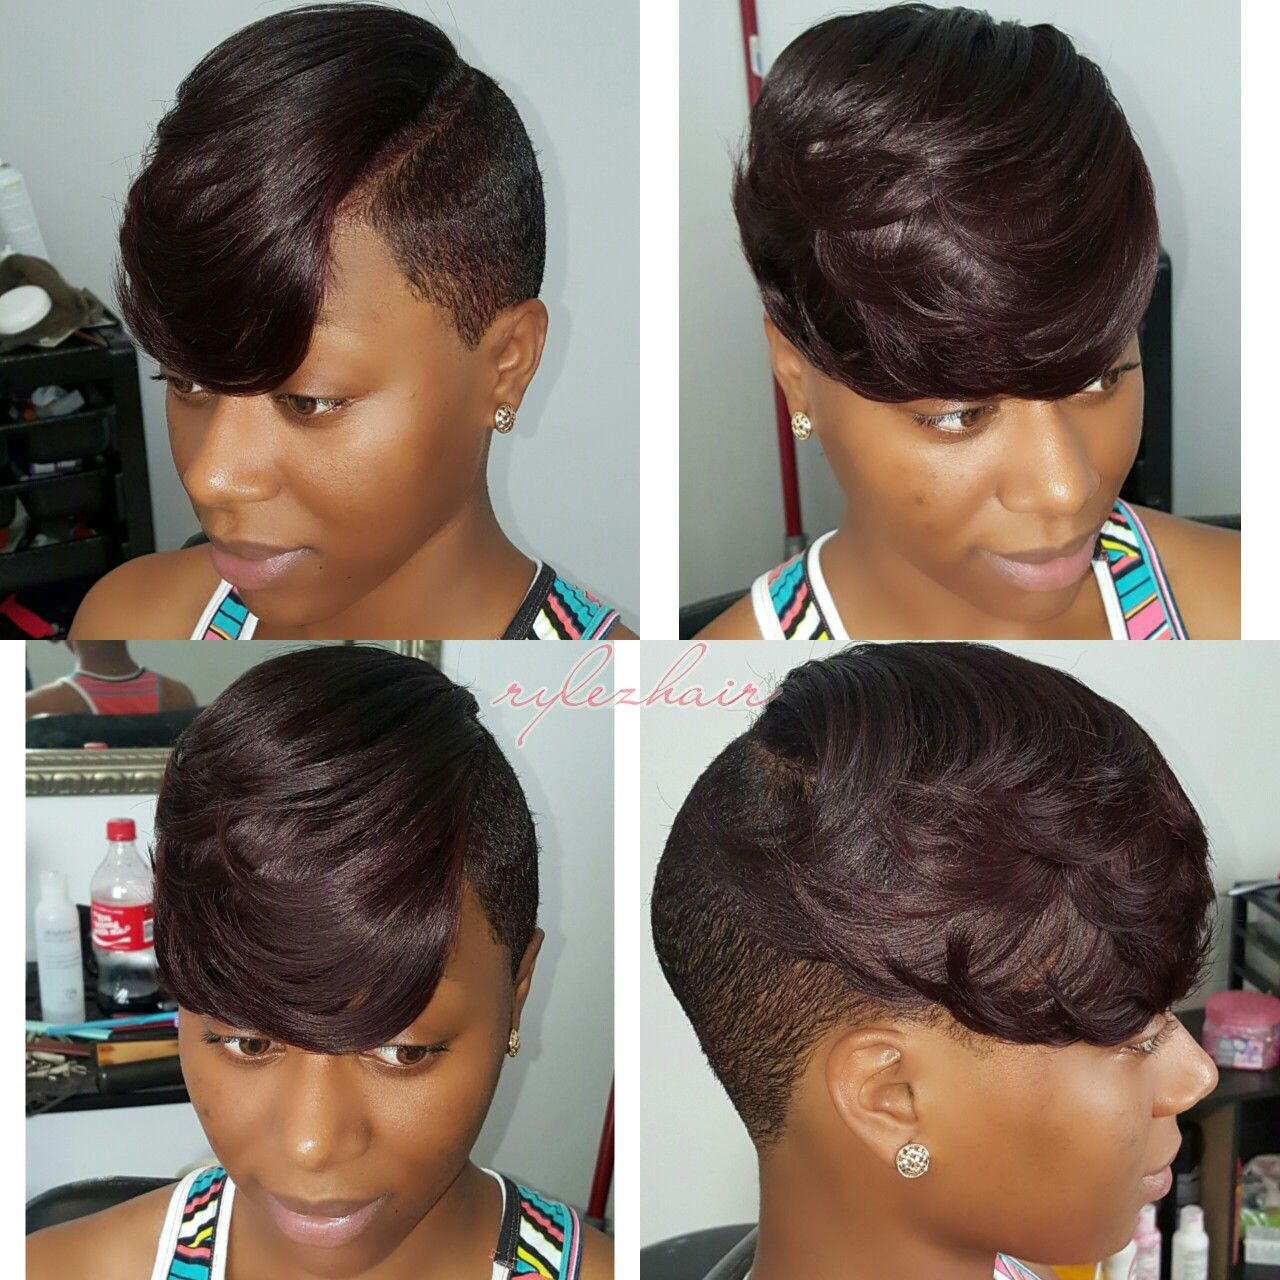 Partial Sew In On Short Hair By Rylezhair Atlstylist 404 552 2131 Short Sew In Hairstyles Stylish Short Hair Short Hair Styles